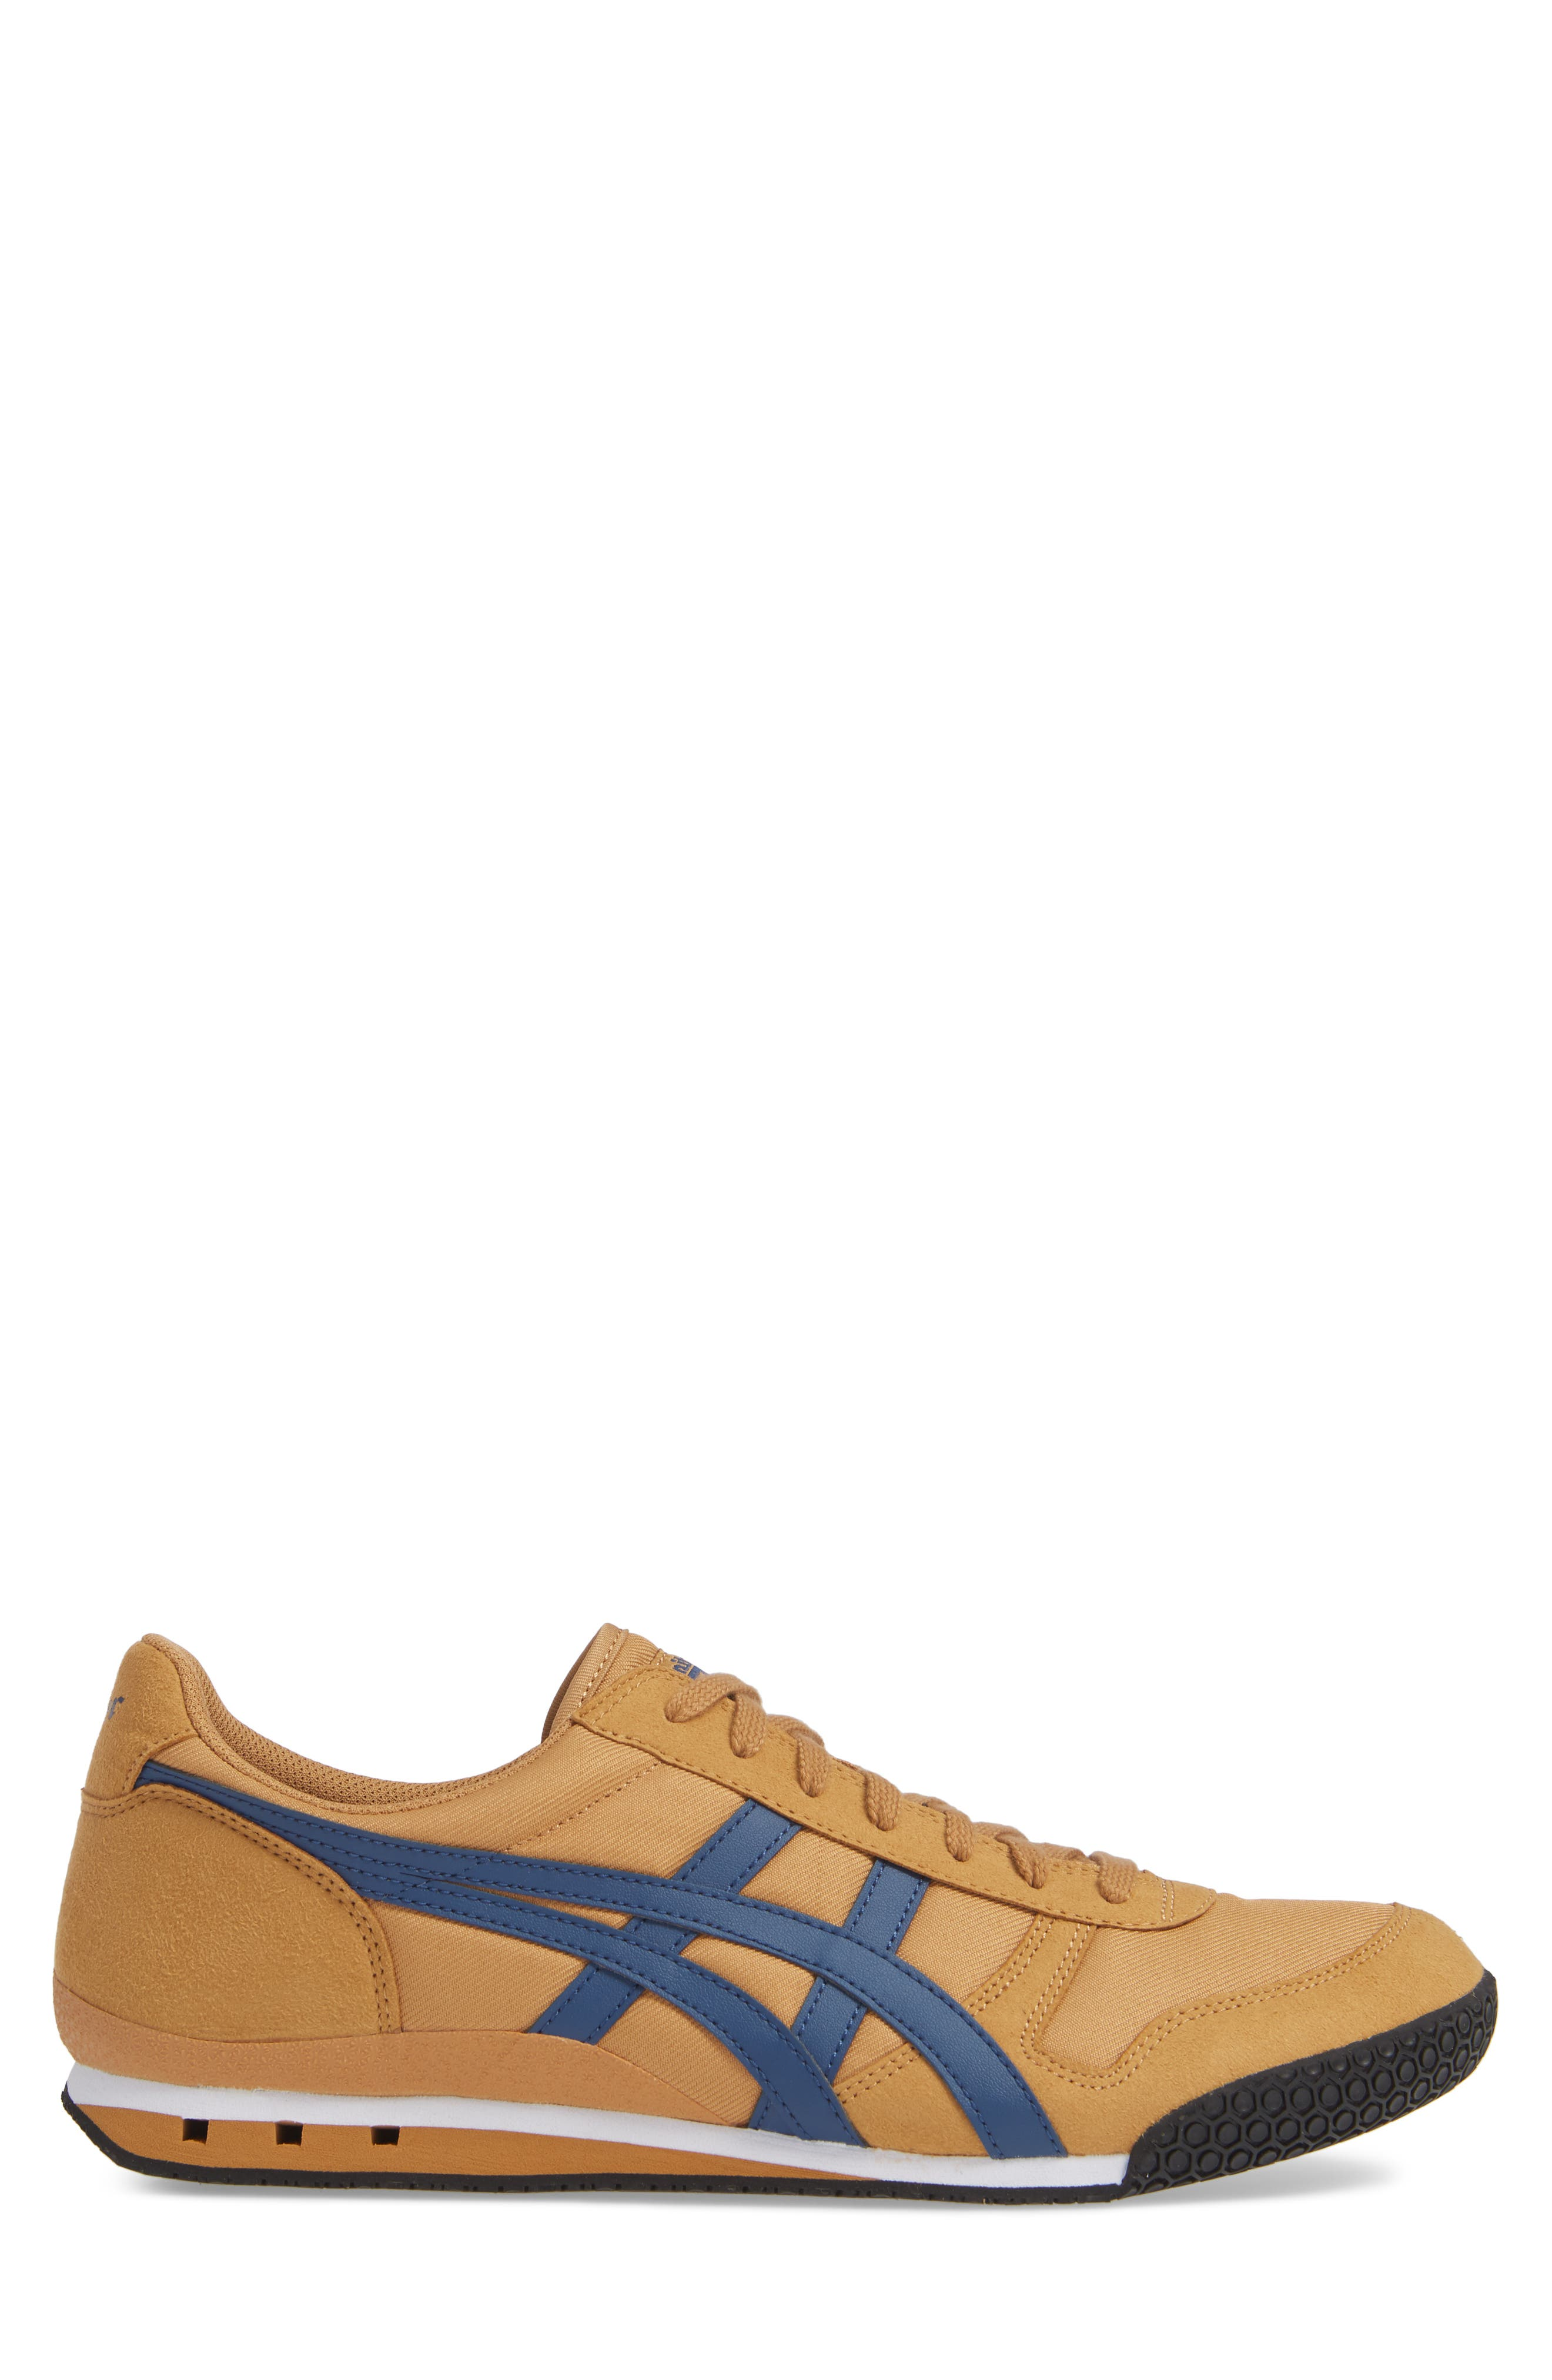 Onitsuka Tiger<sup>™</sup> Ultimate 81<sup>™</sup> Sneaker,                             Alternate thumbnail 3, color,                             200